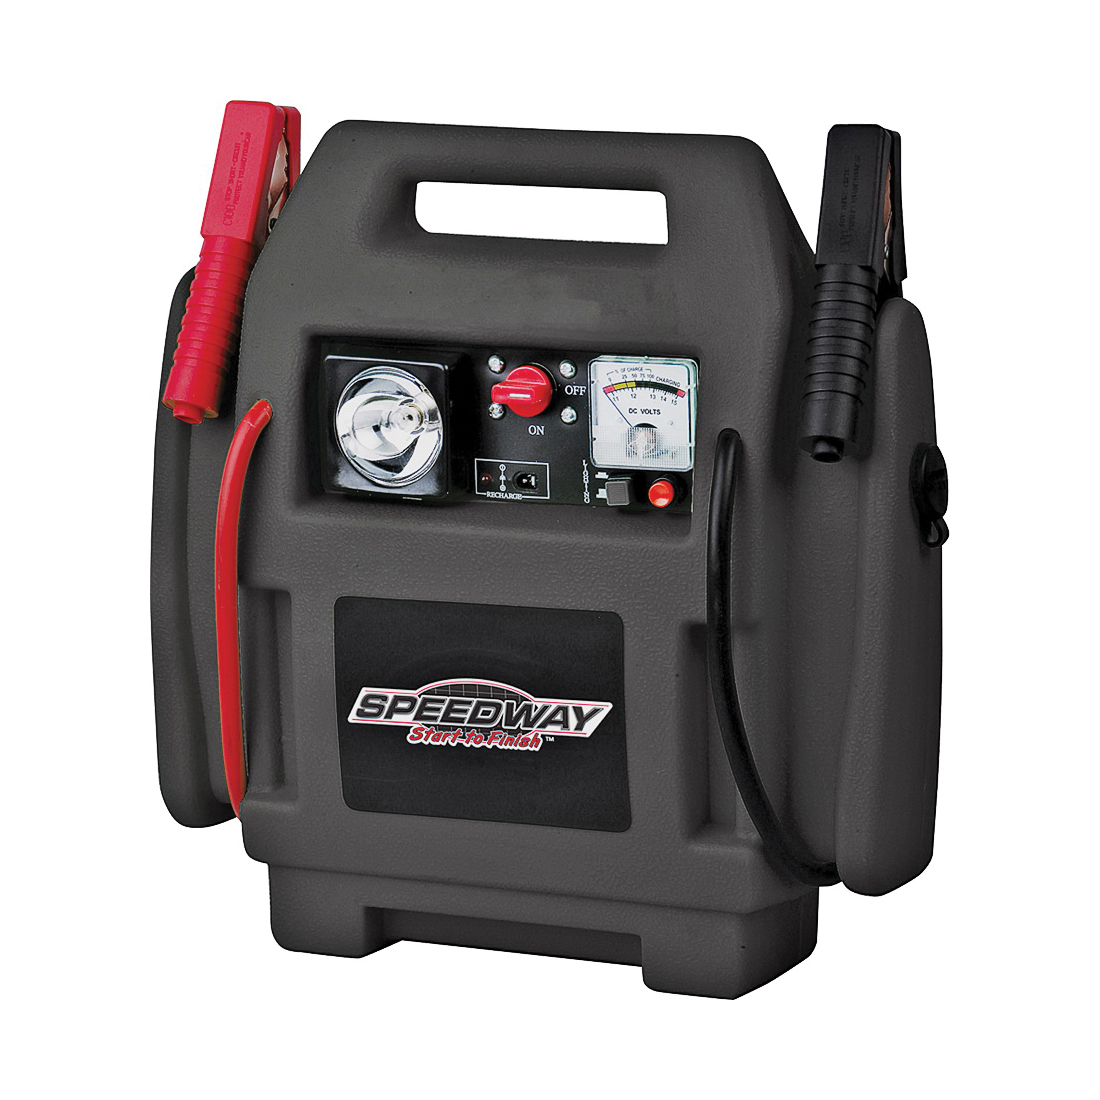 Picture of Speedway 7226 Power Station Jump Starter, 12 VDC, 17 A, Lead-Acid Battery